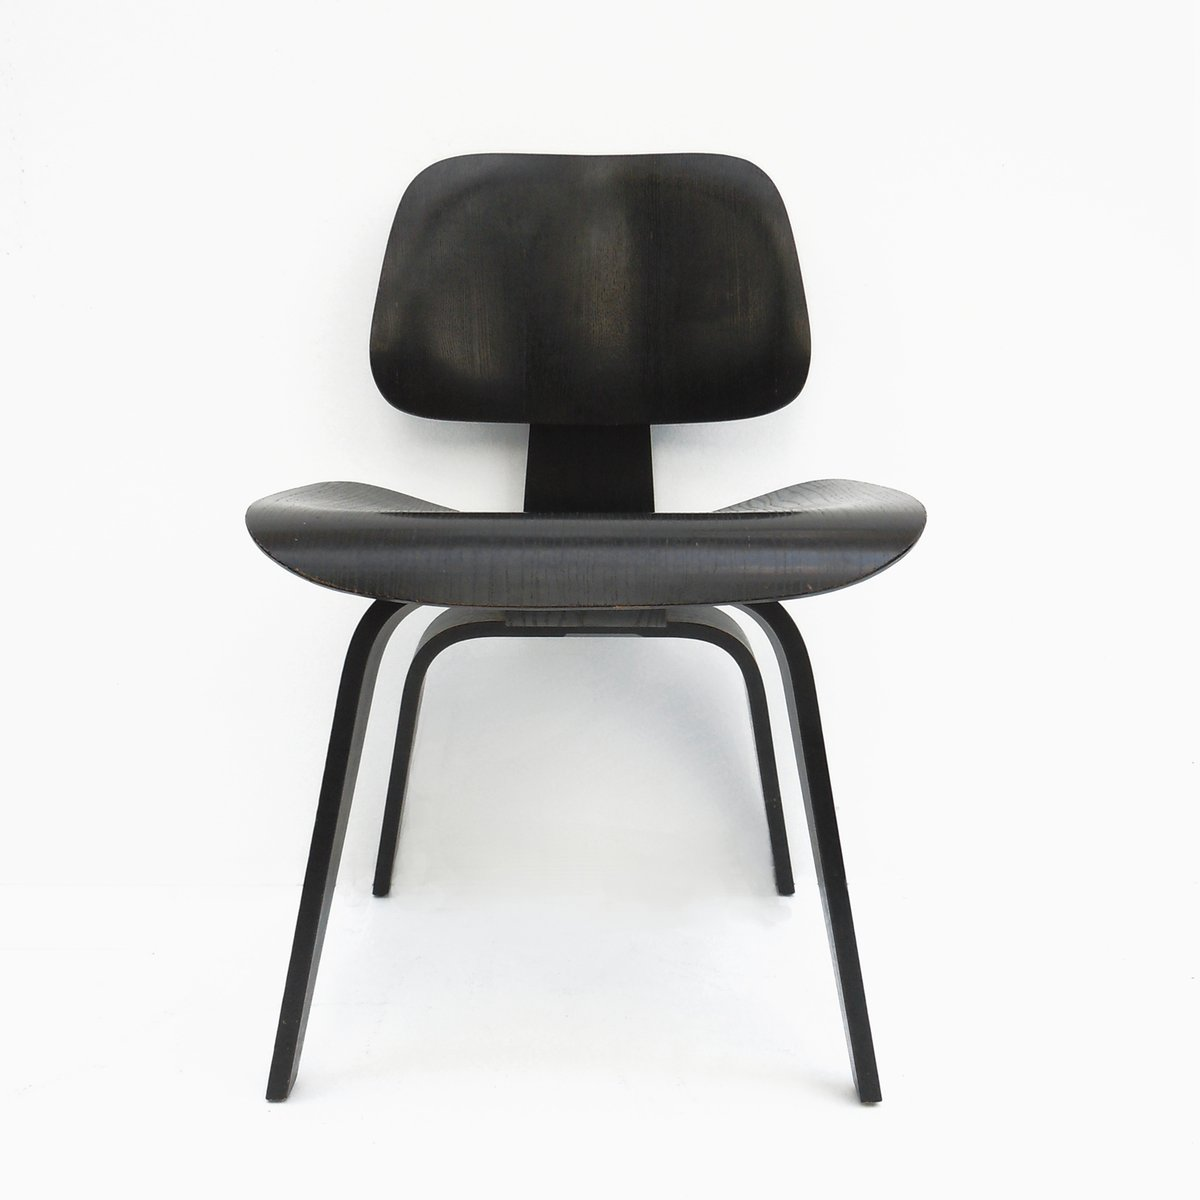 vintage dcw black dining chair by charles ray eames for. Black Bedroom Furniture Sets. Home Design Ideas